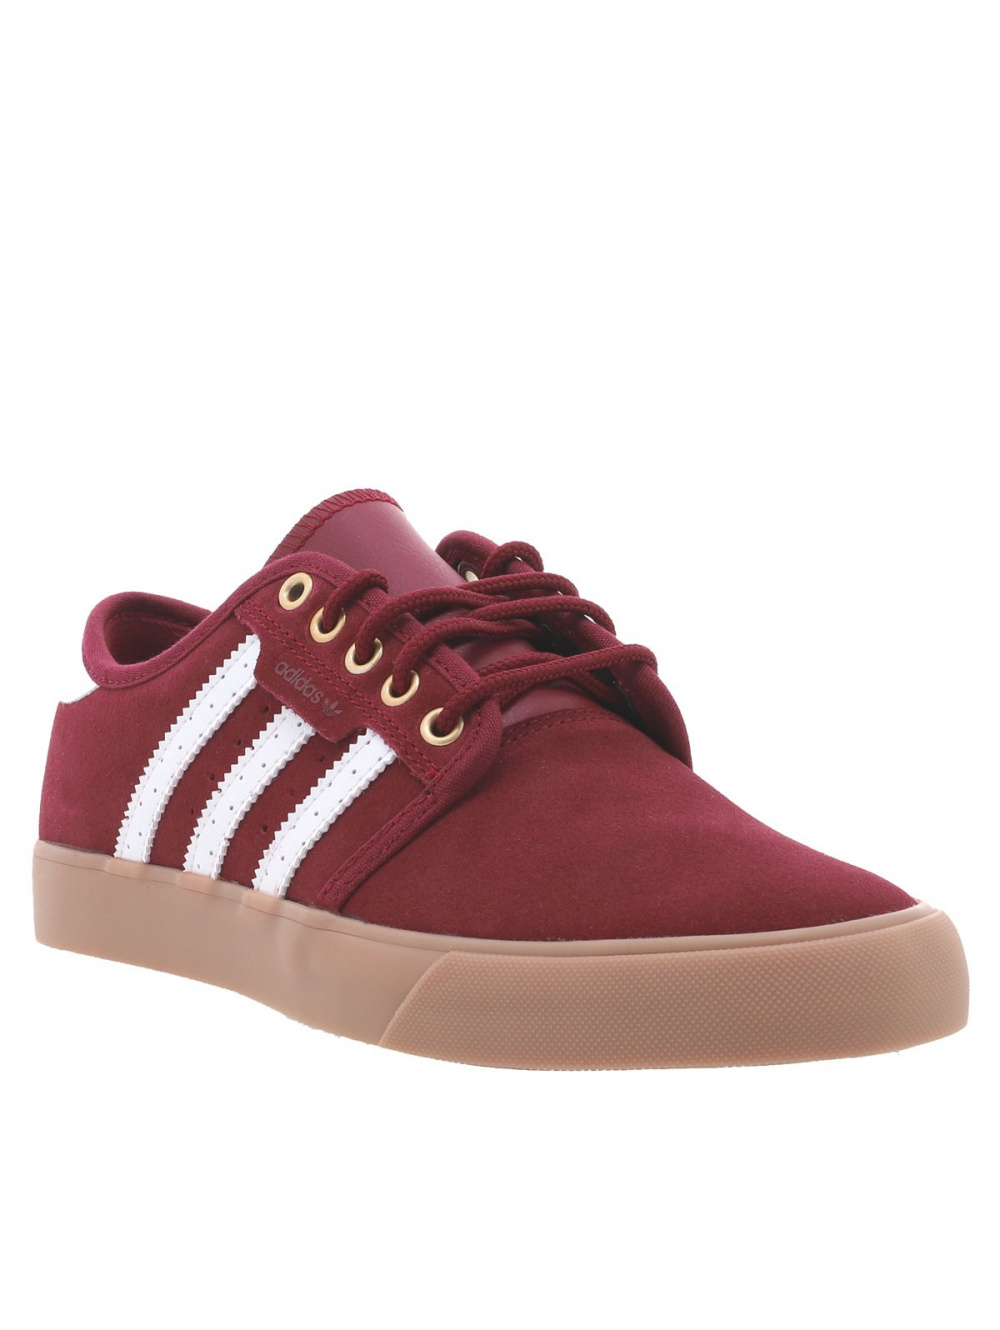 Baskets Seeley homme rouge